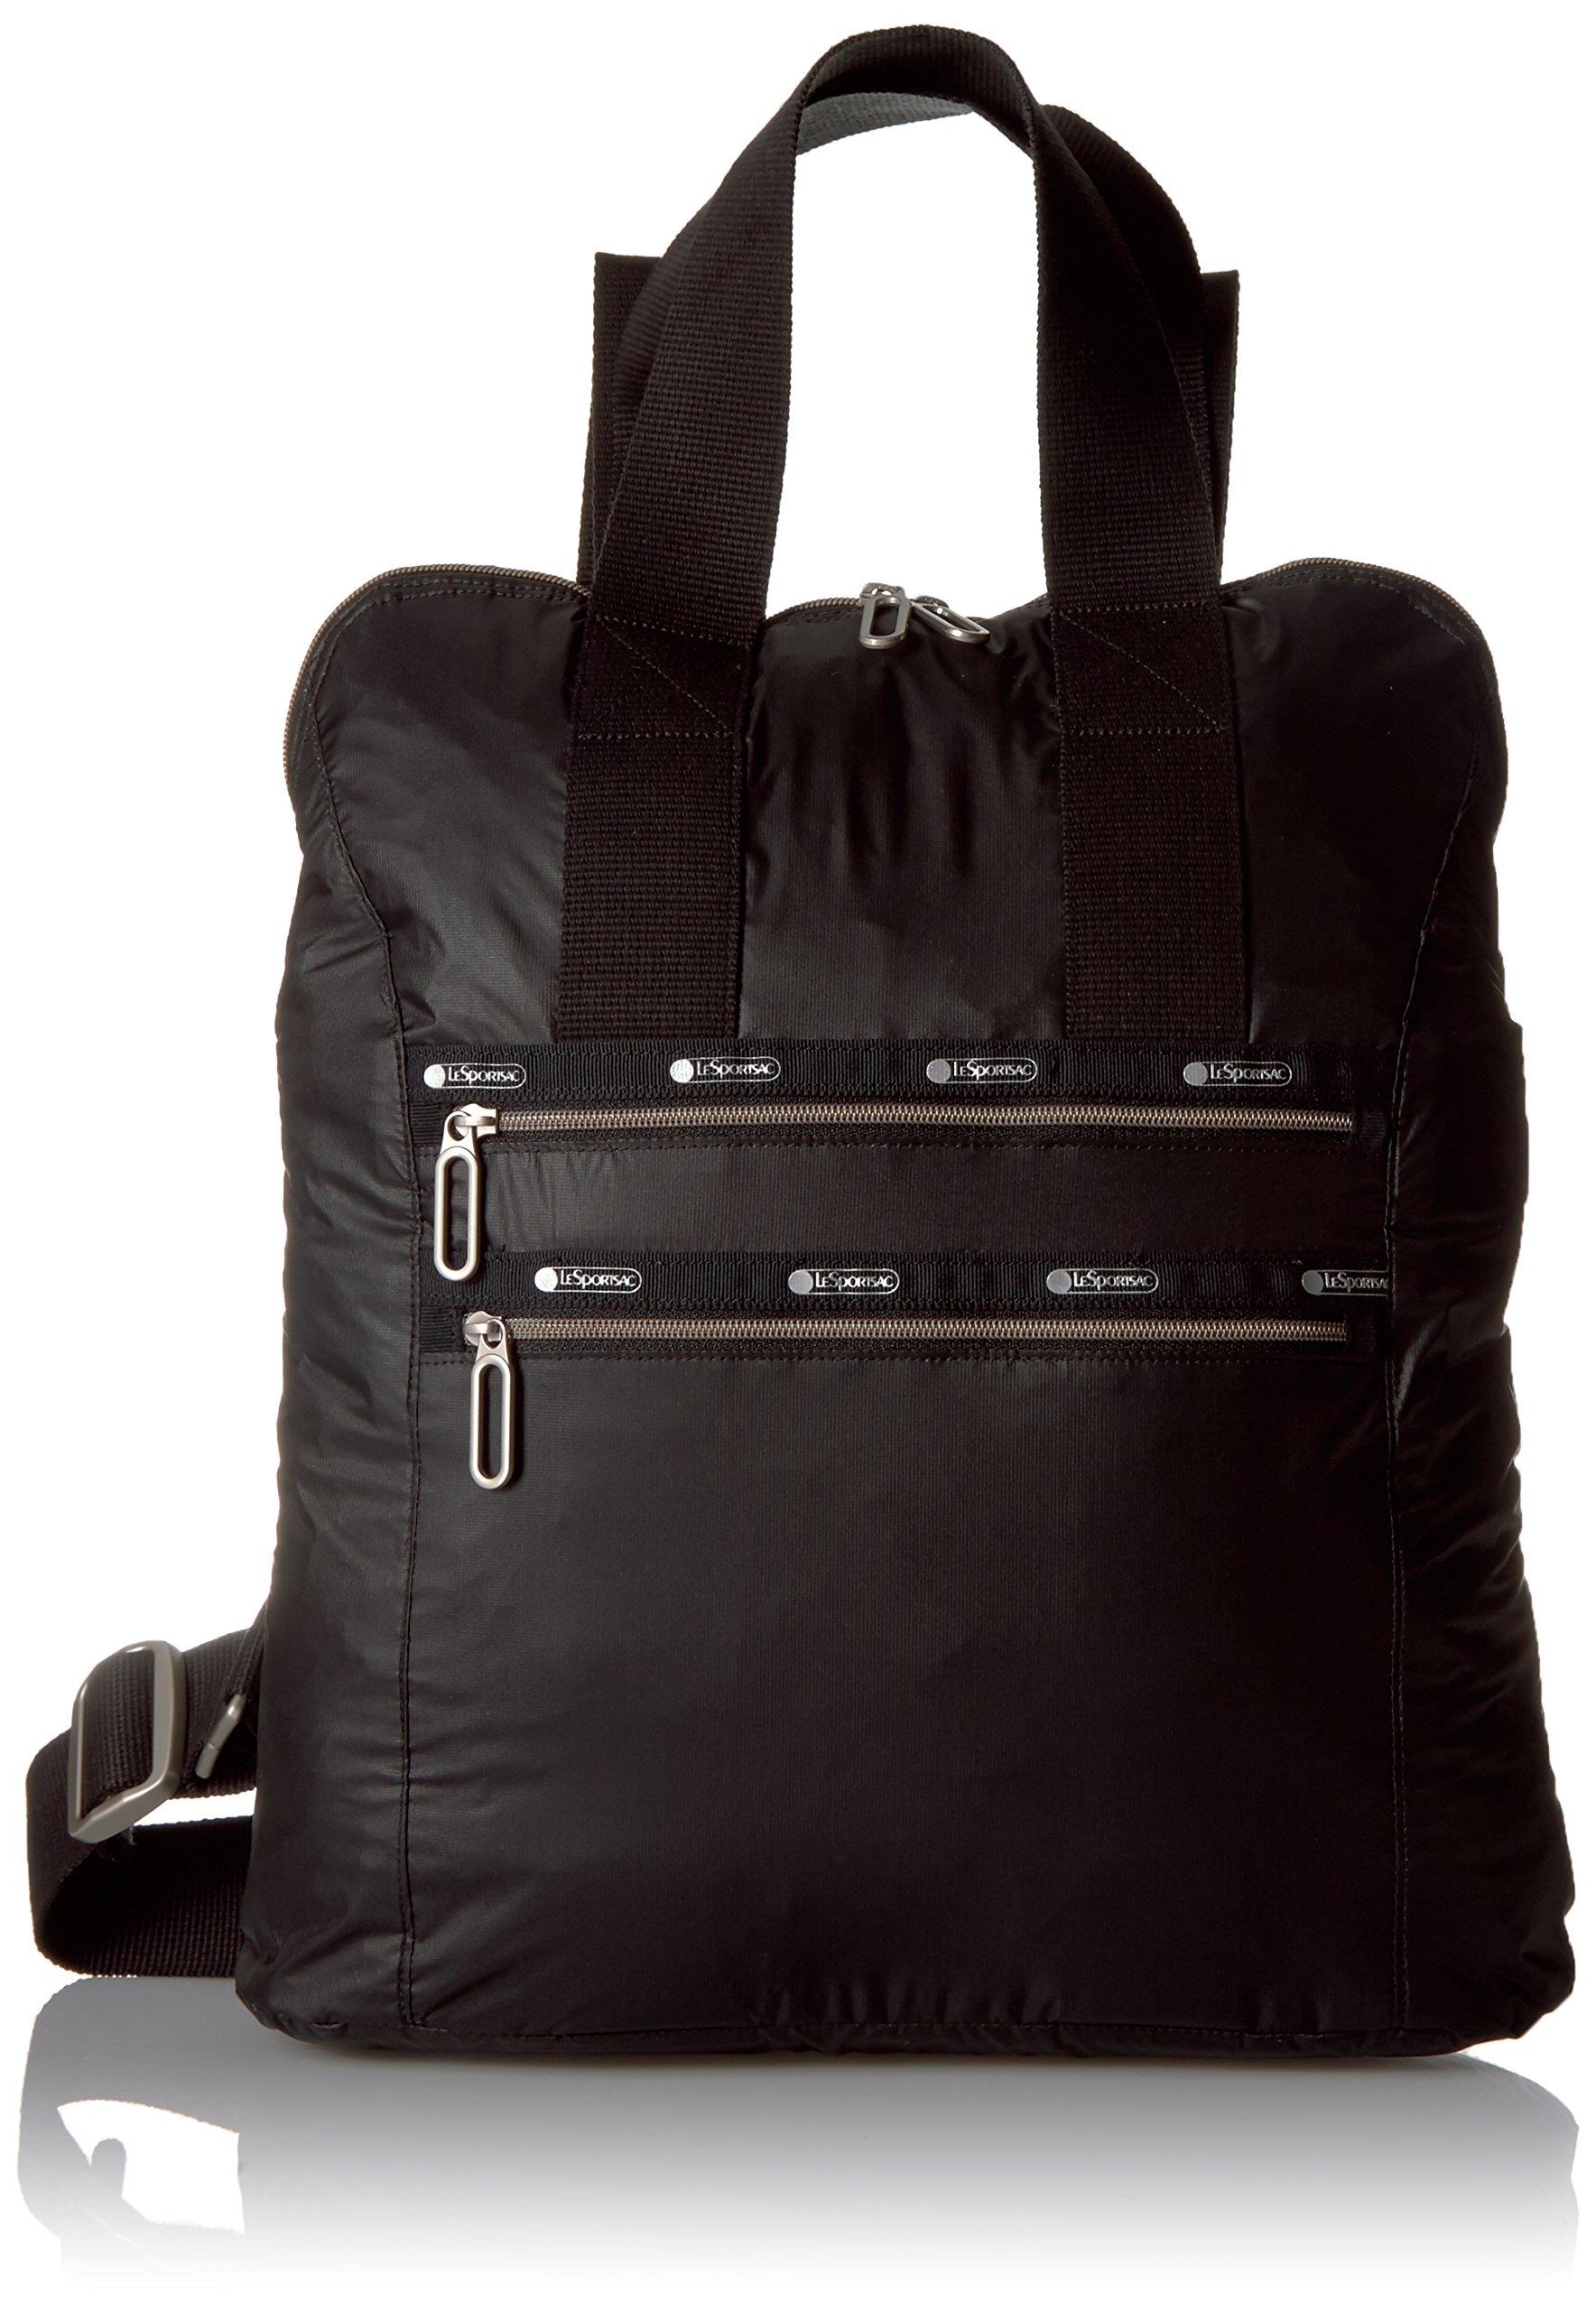 LeSportsac Commuter Back pack, True Black/Brown Calf, One Size